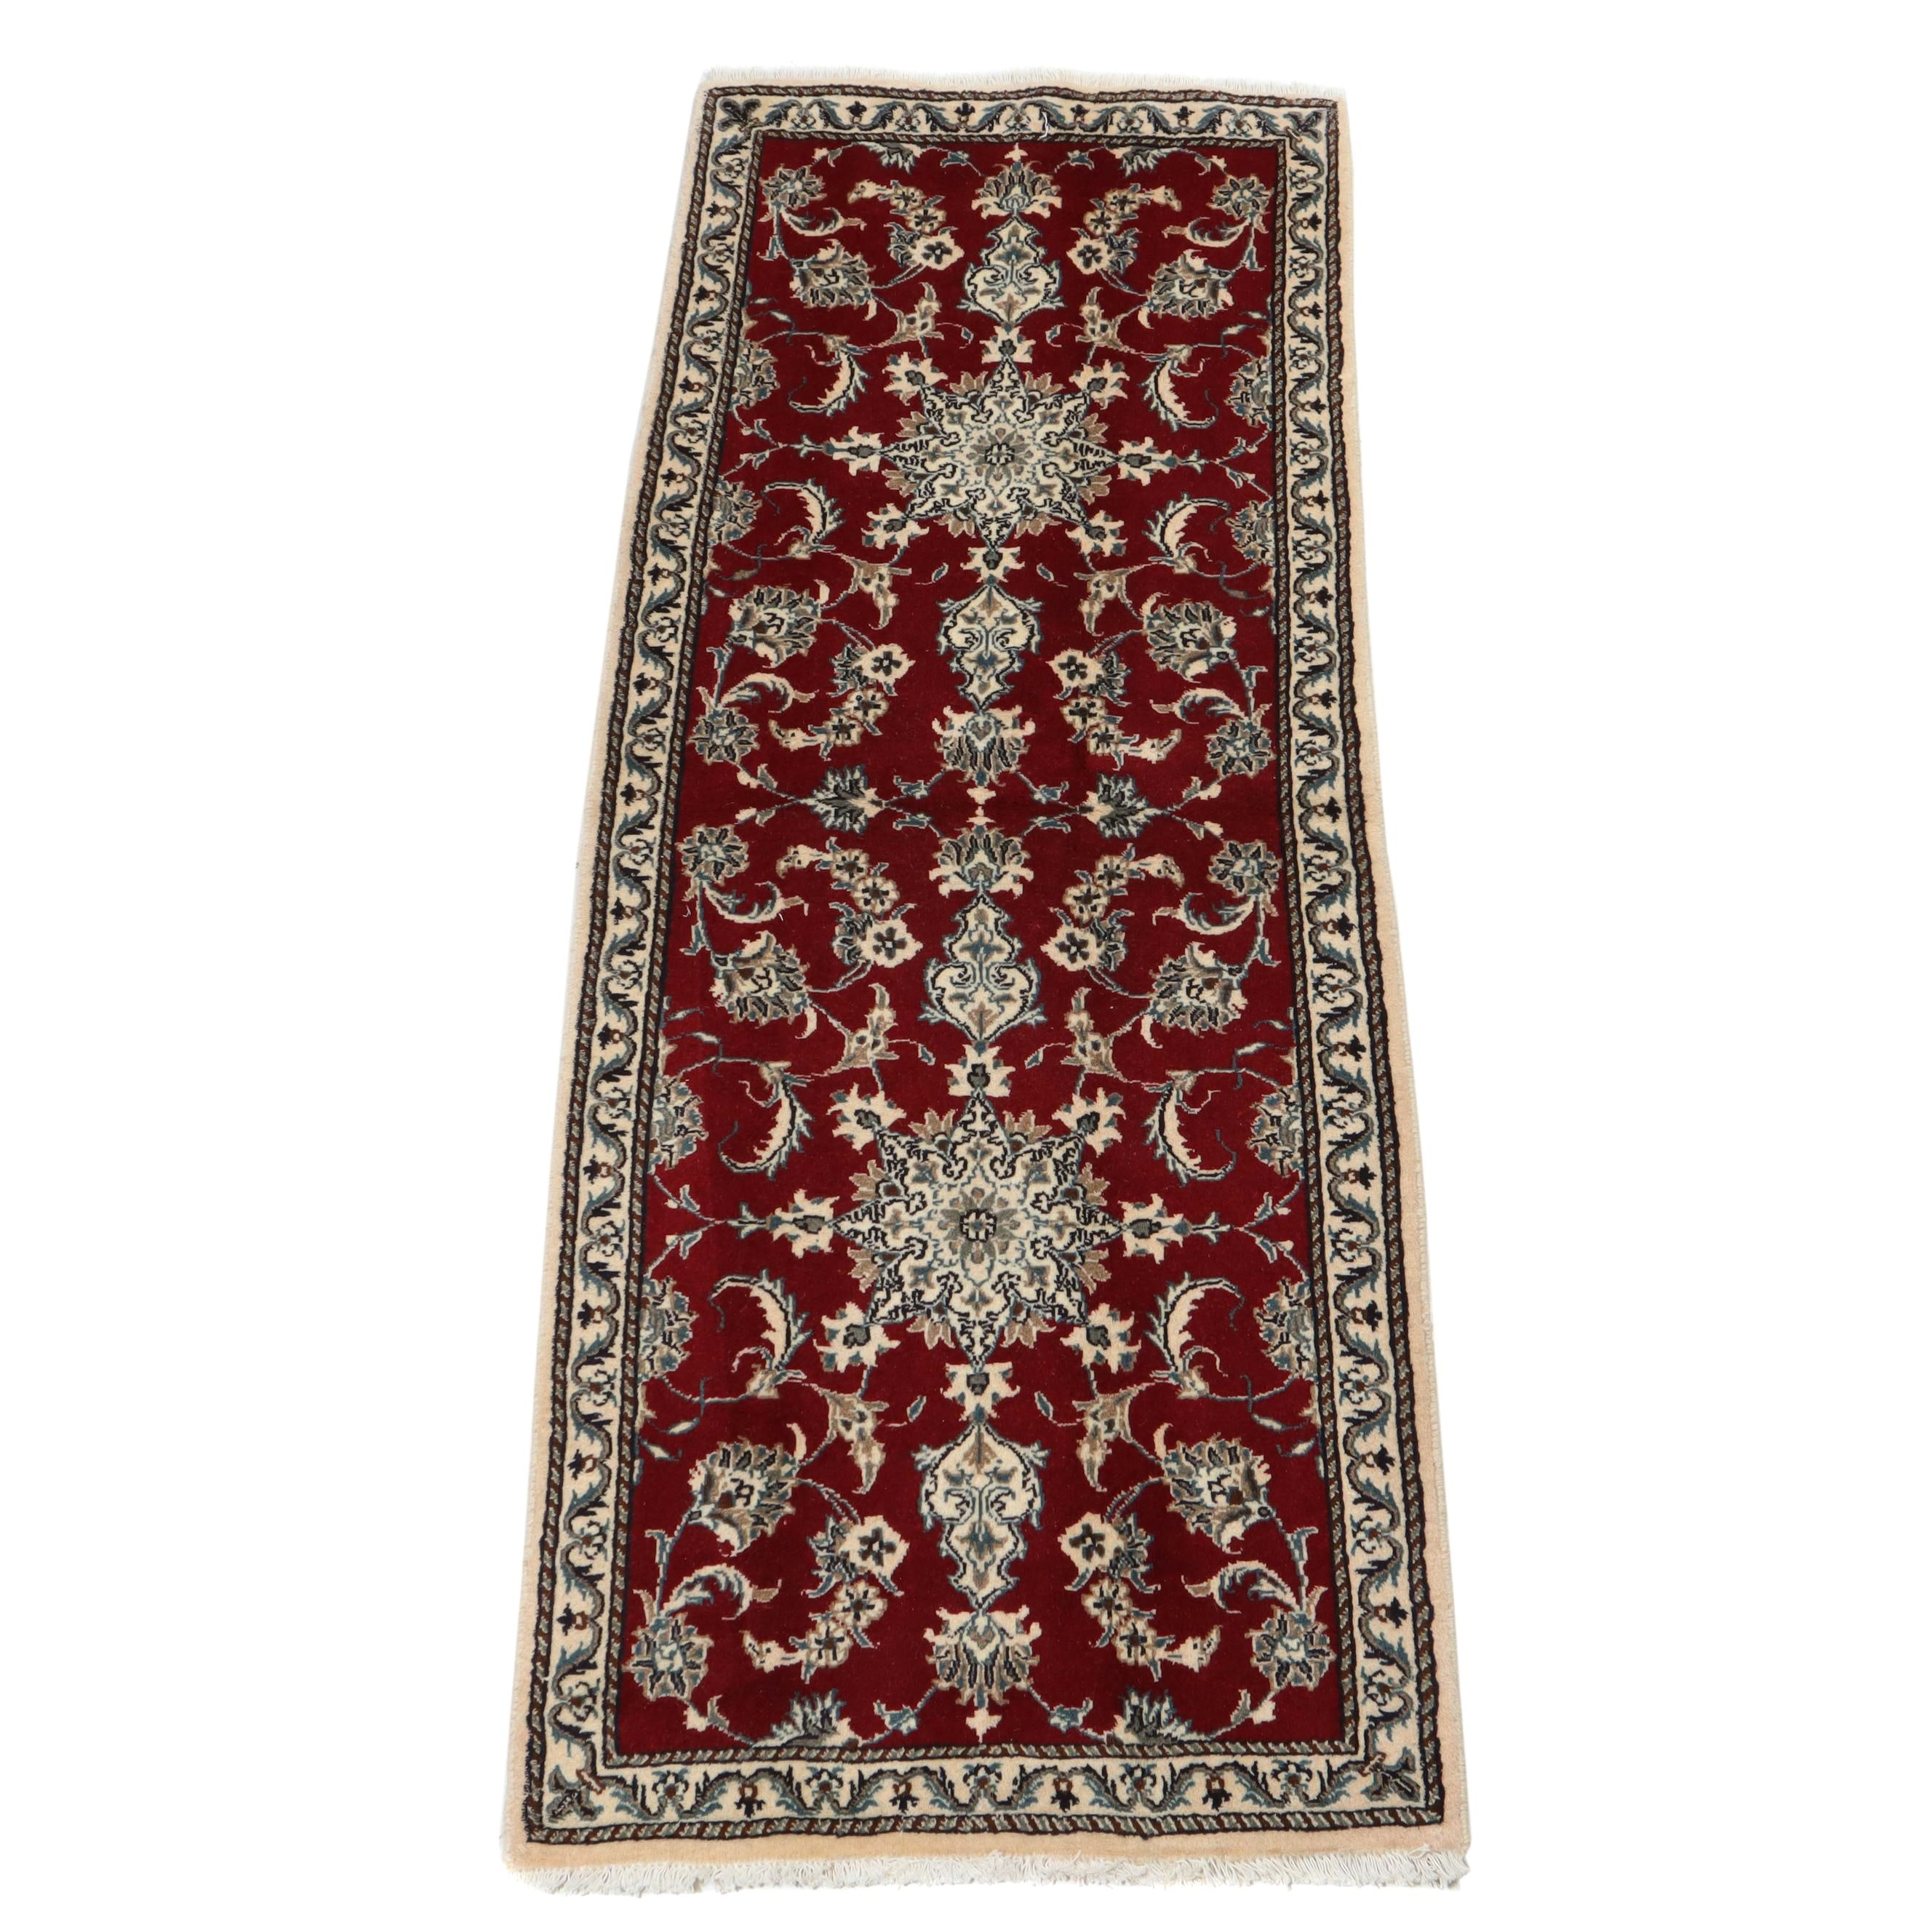 2.8' x 7.1' Hand-Knotted Persian Nain Silk Blend Carpet Runner